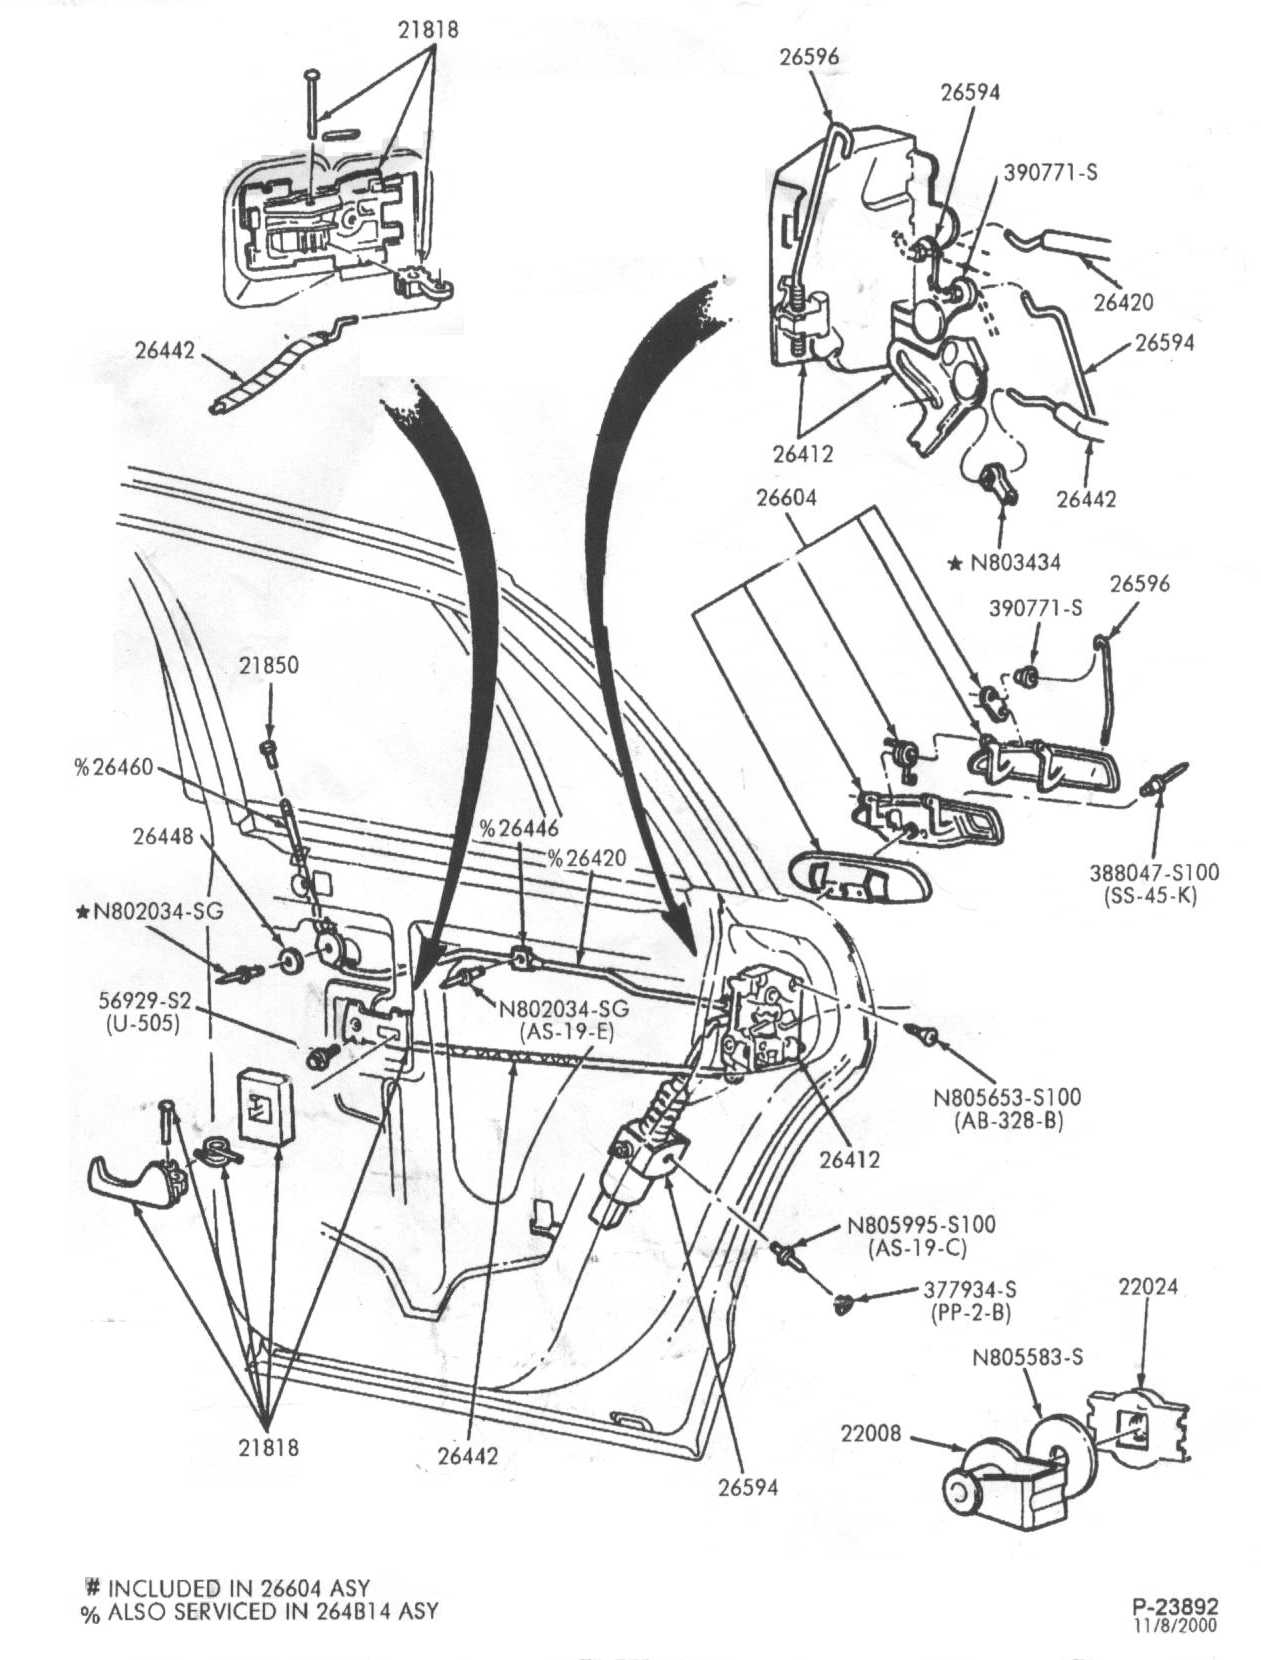 Ford Crown Victoria Police Interceptor P71 Rear Door Parts Engine Diagram Names After Entering The Required Data A Part Number Will Be Provided And Person Can Check For Avaliability Of In Warehouse If Needed